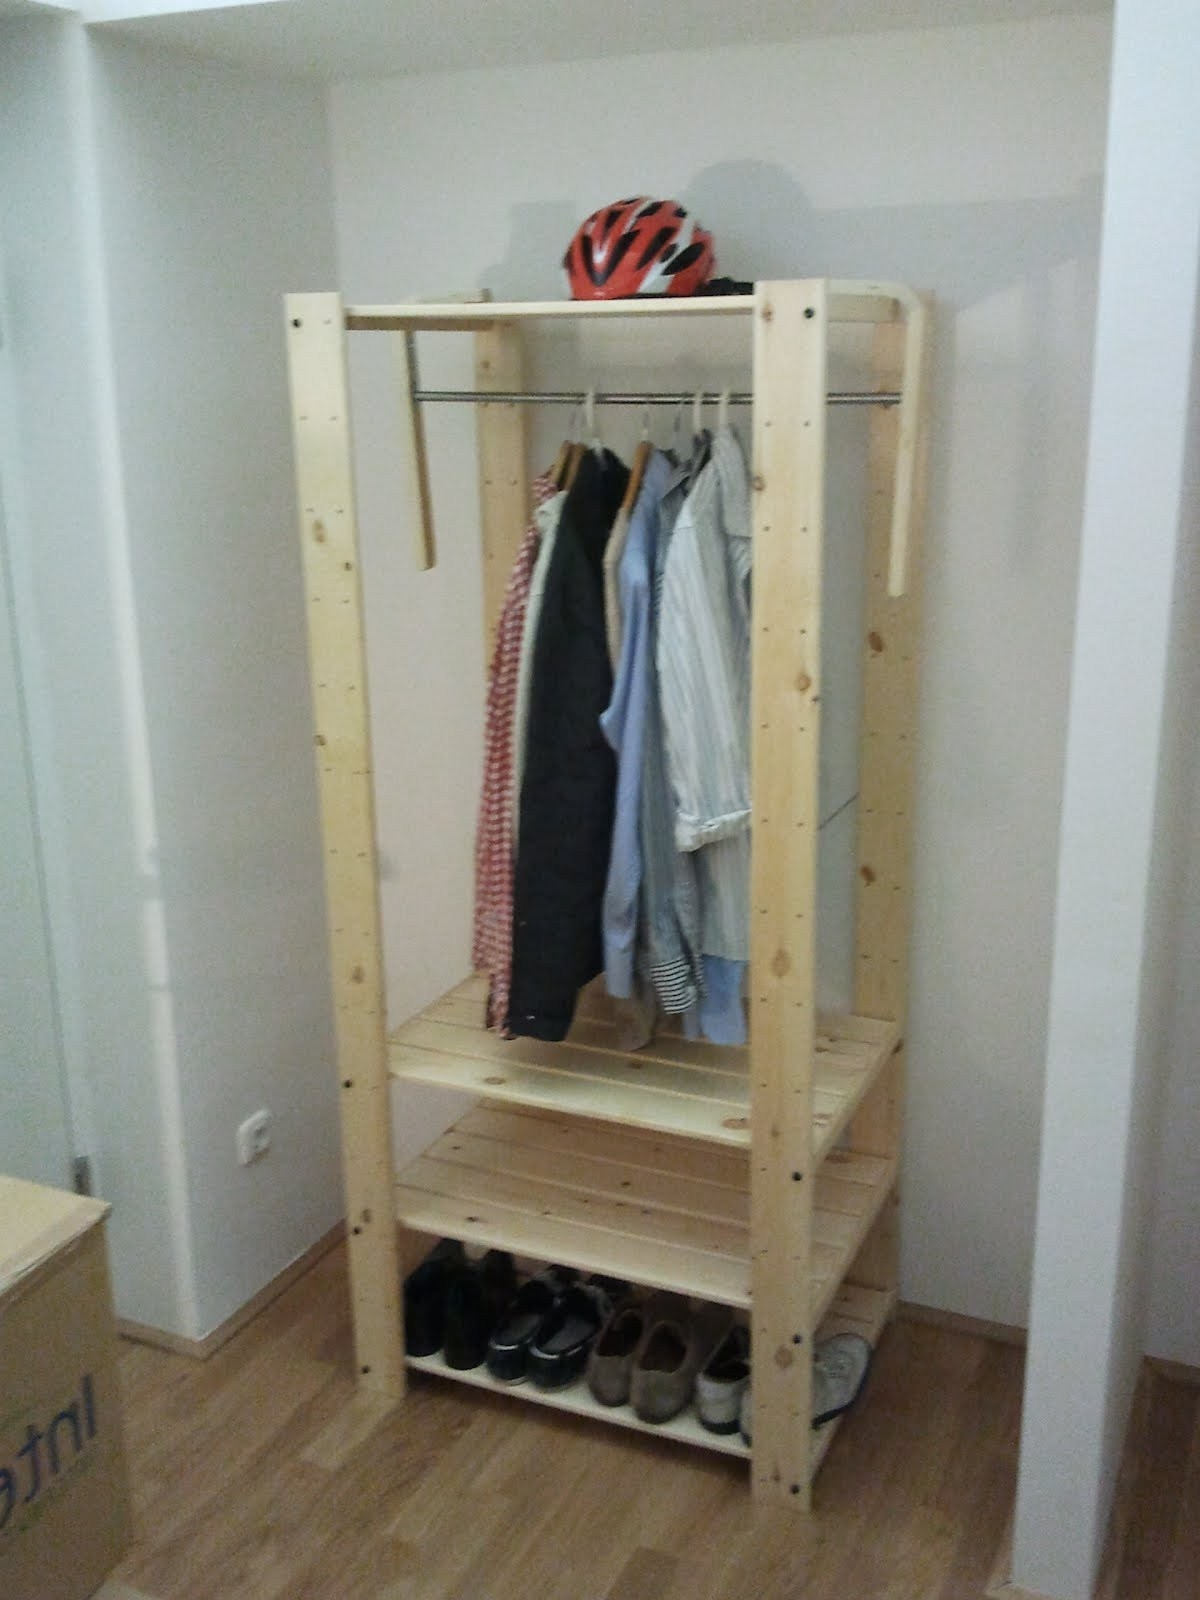 Widely Used Double Rail Wardrobes Ikea With Regard To The 40 Euro Wardrobe – Ikea Hackers (View 10 of 15)